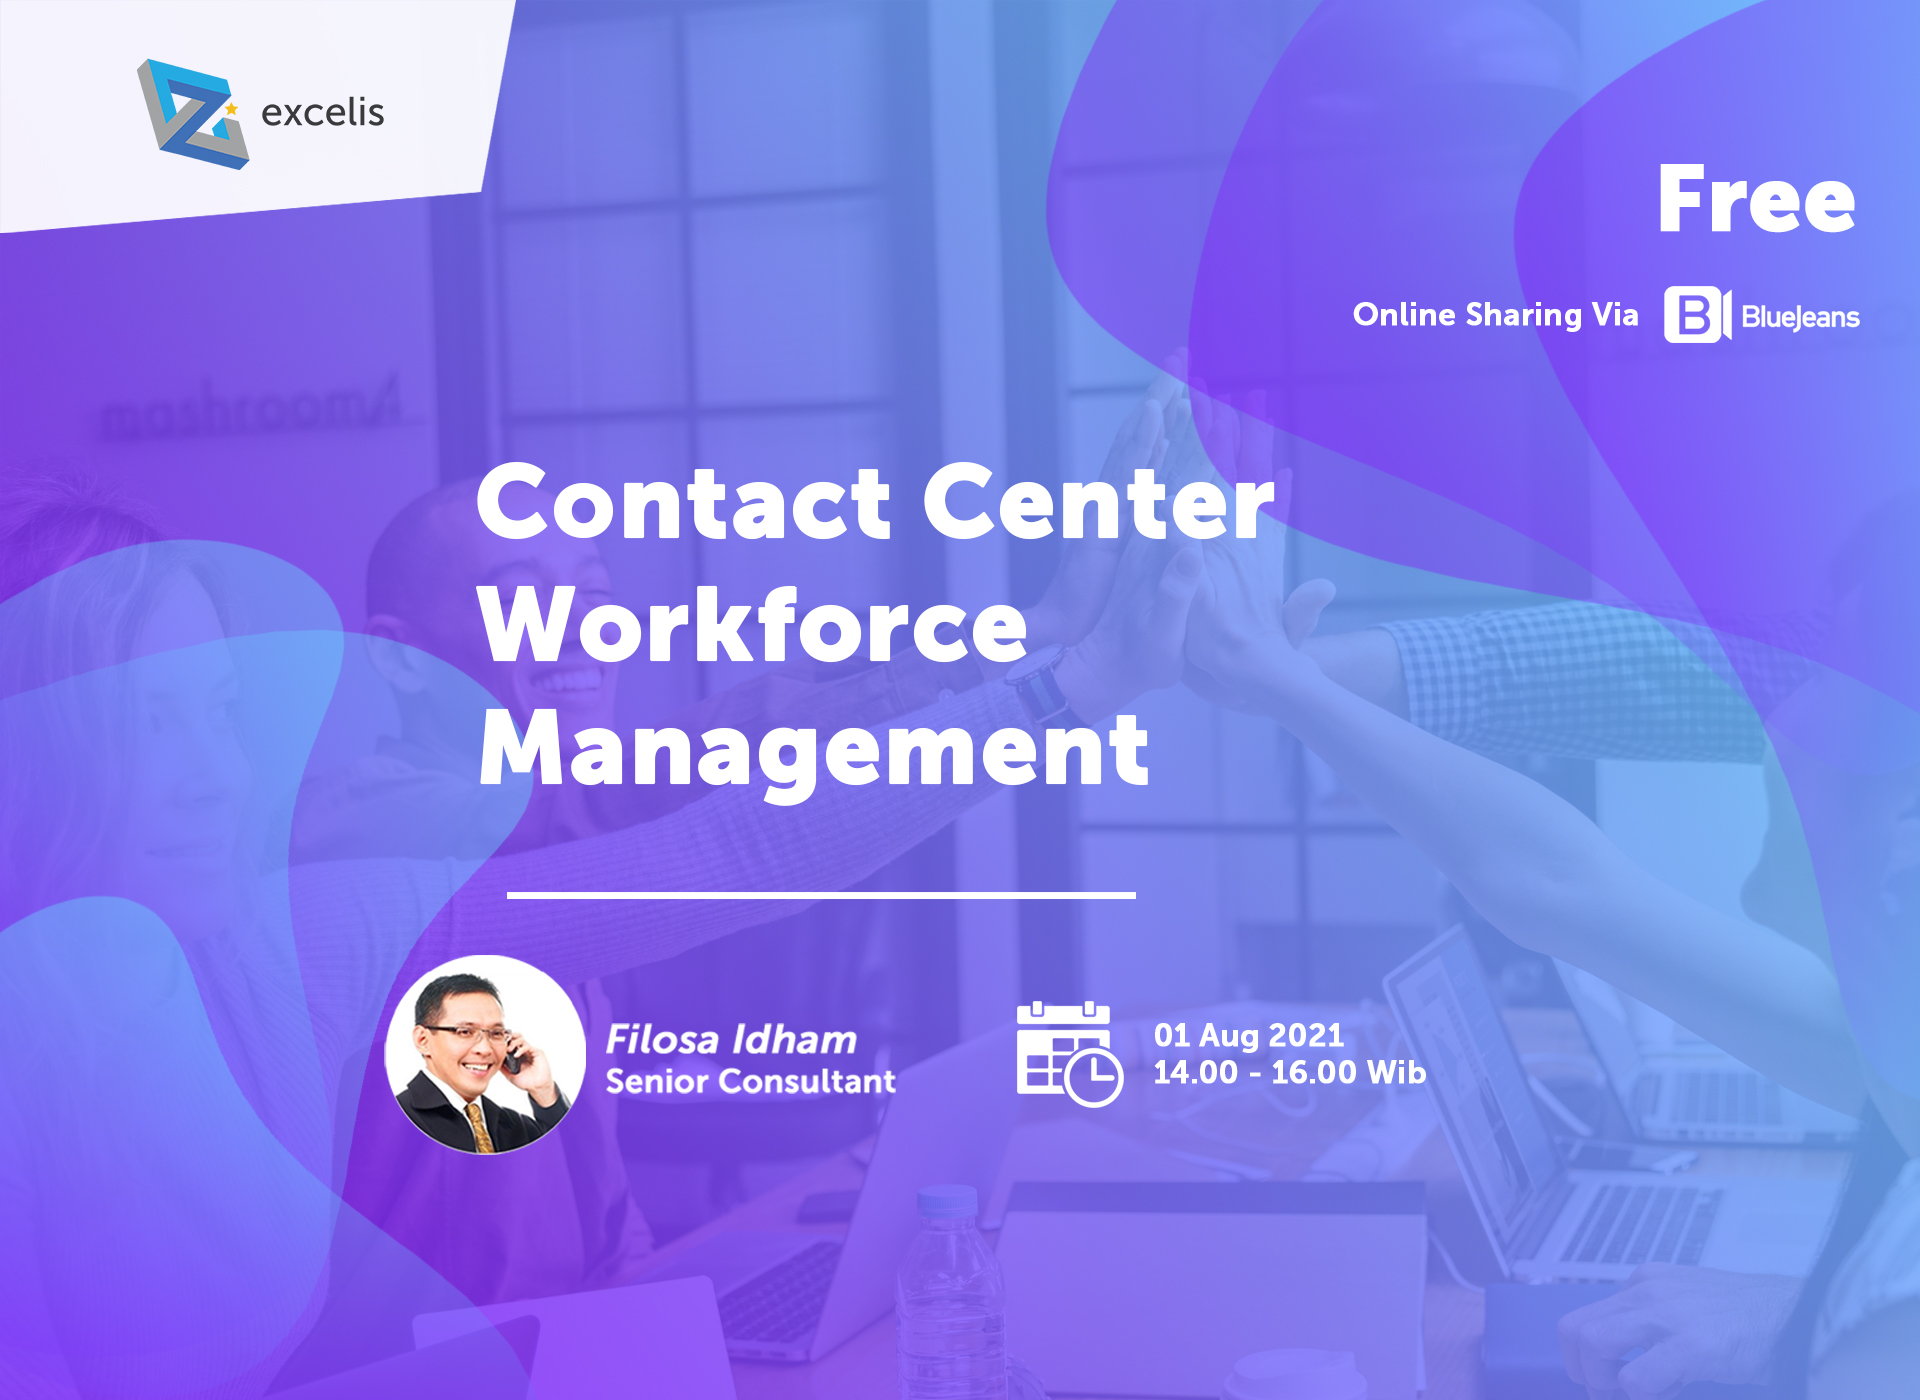 Contact Center Workforce Management